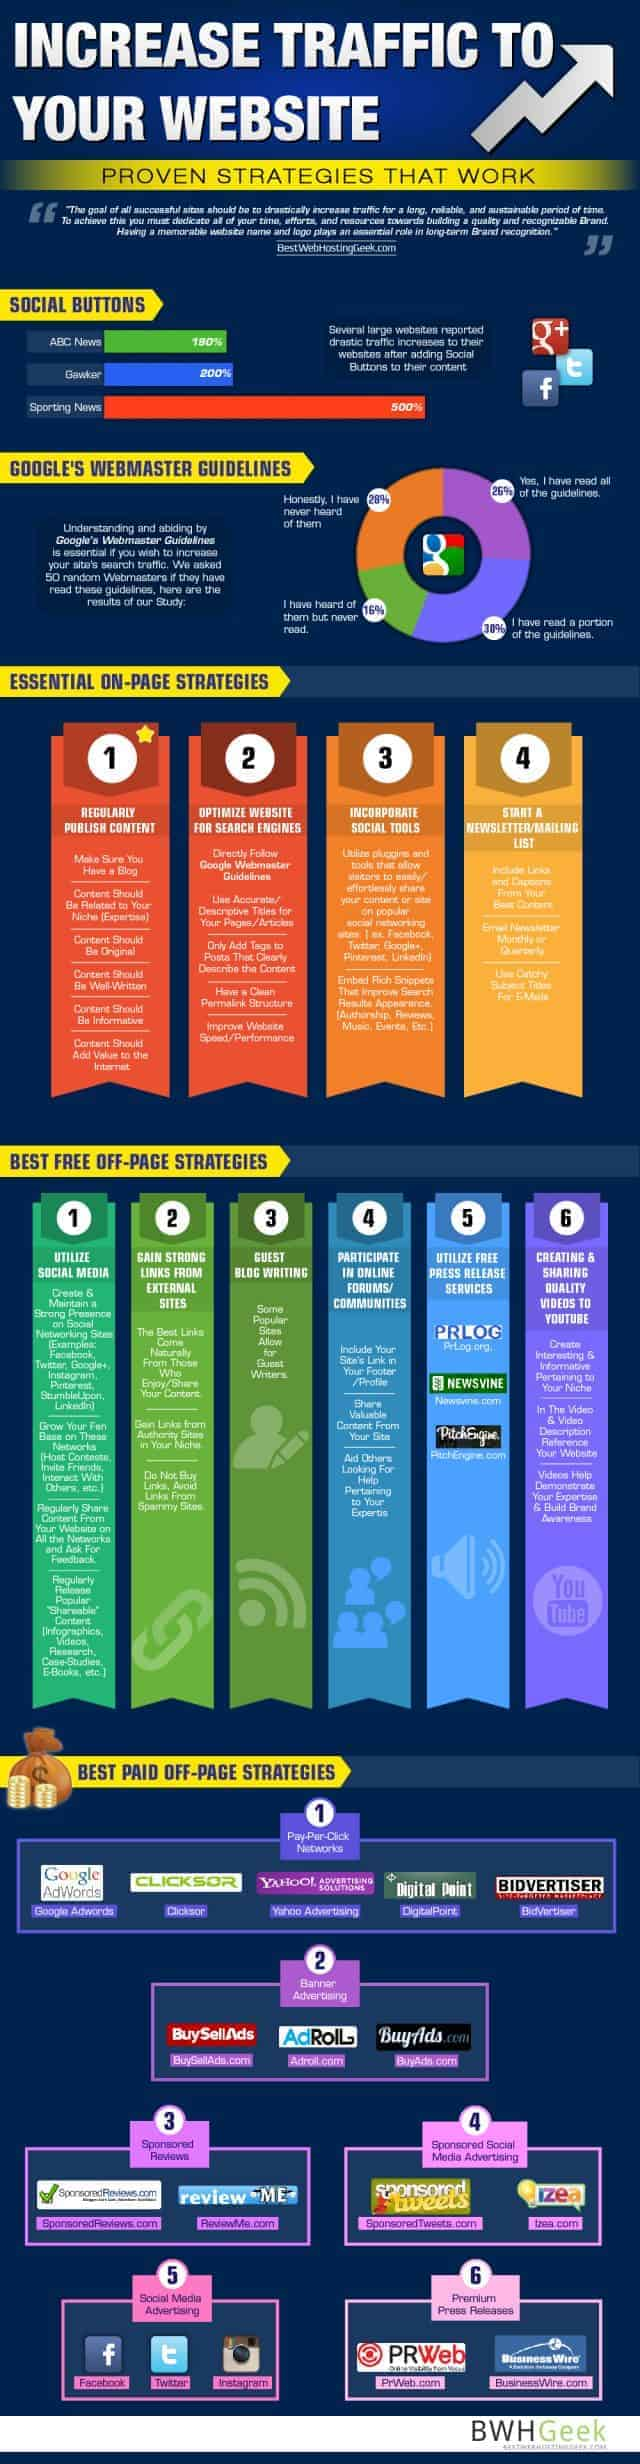 Increase Traffic to Your Website Infographic